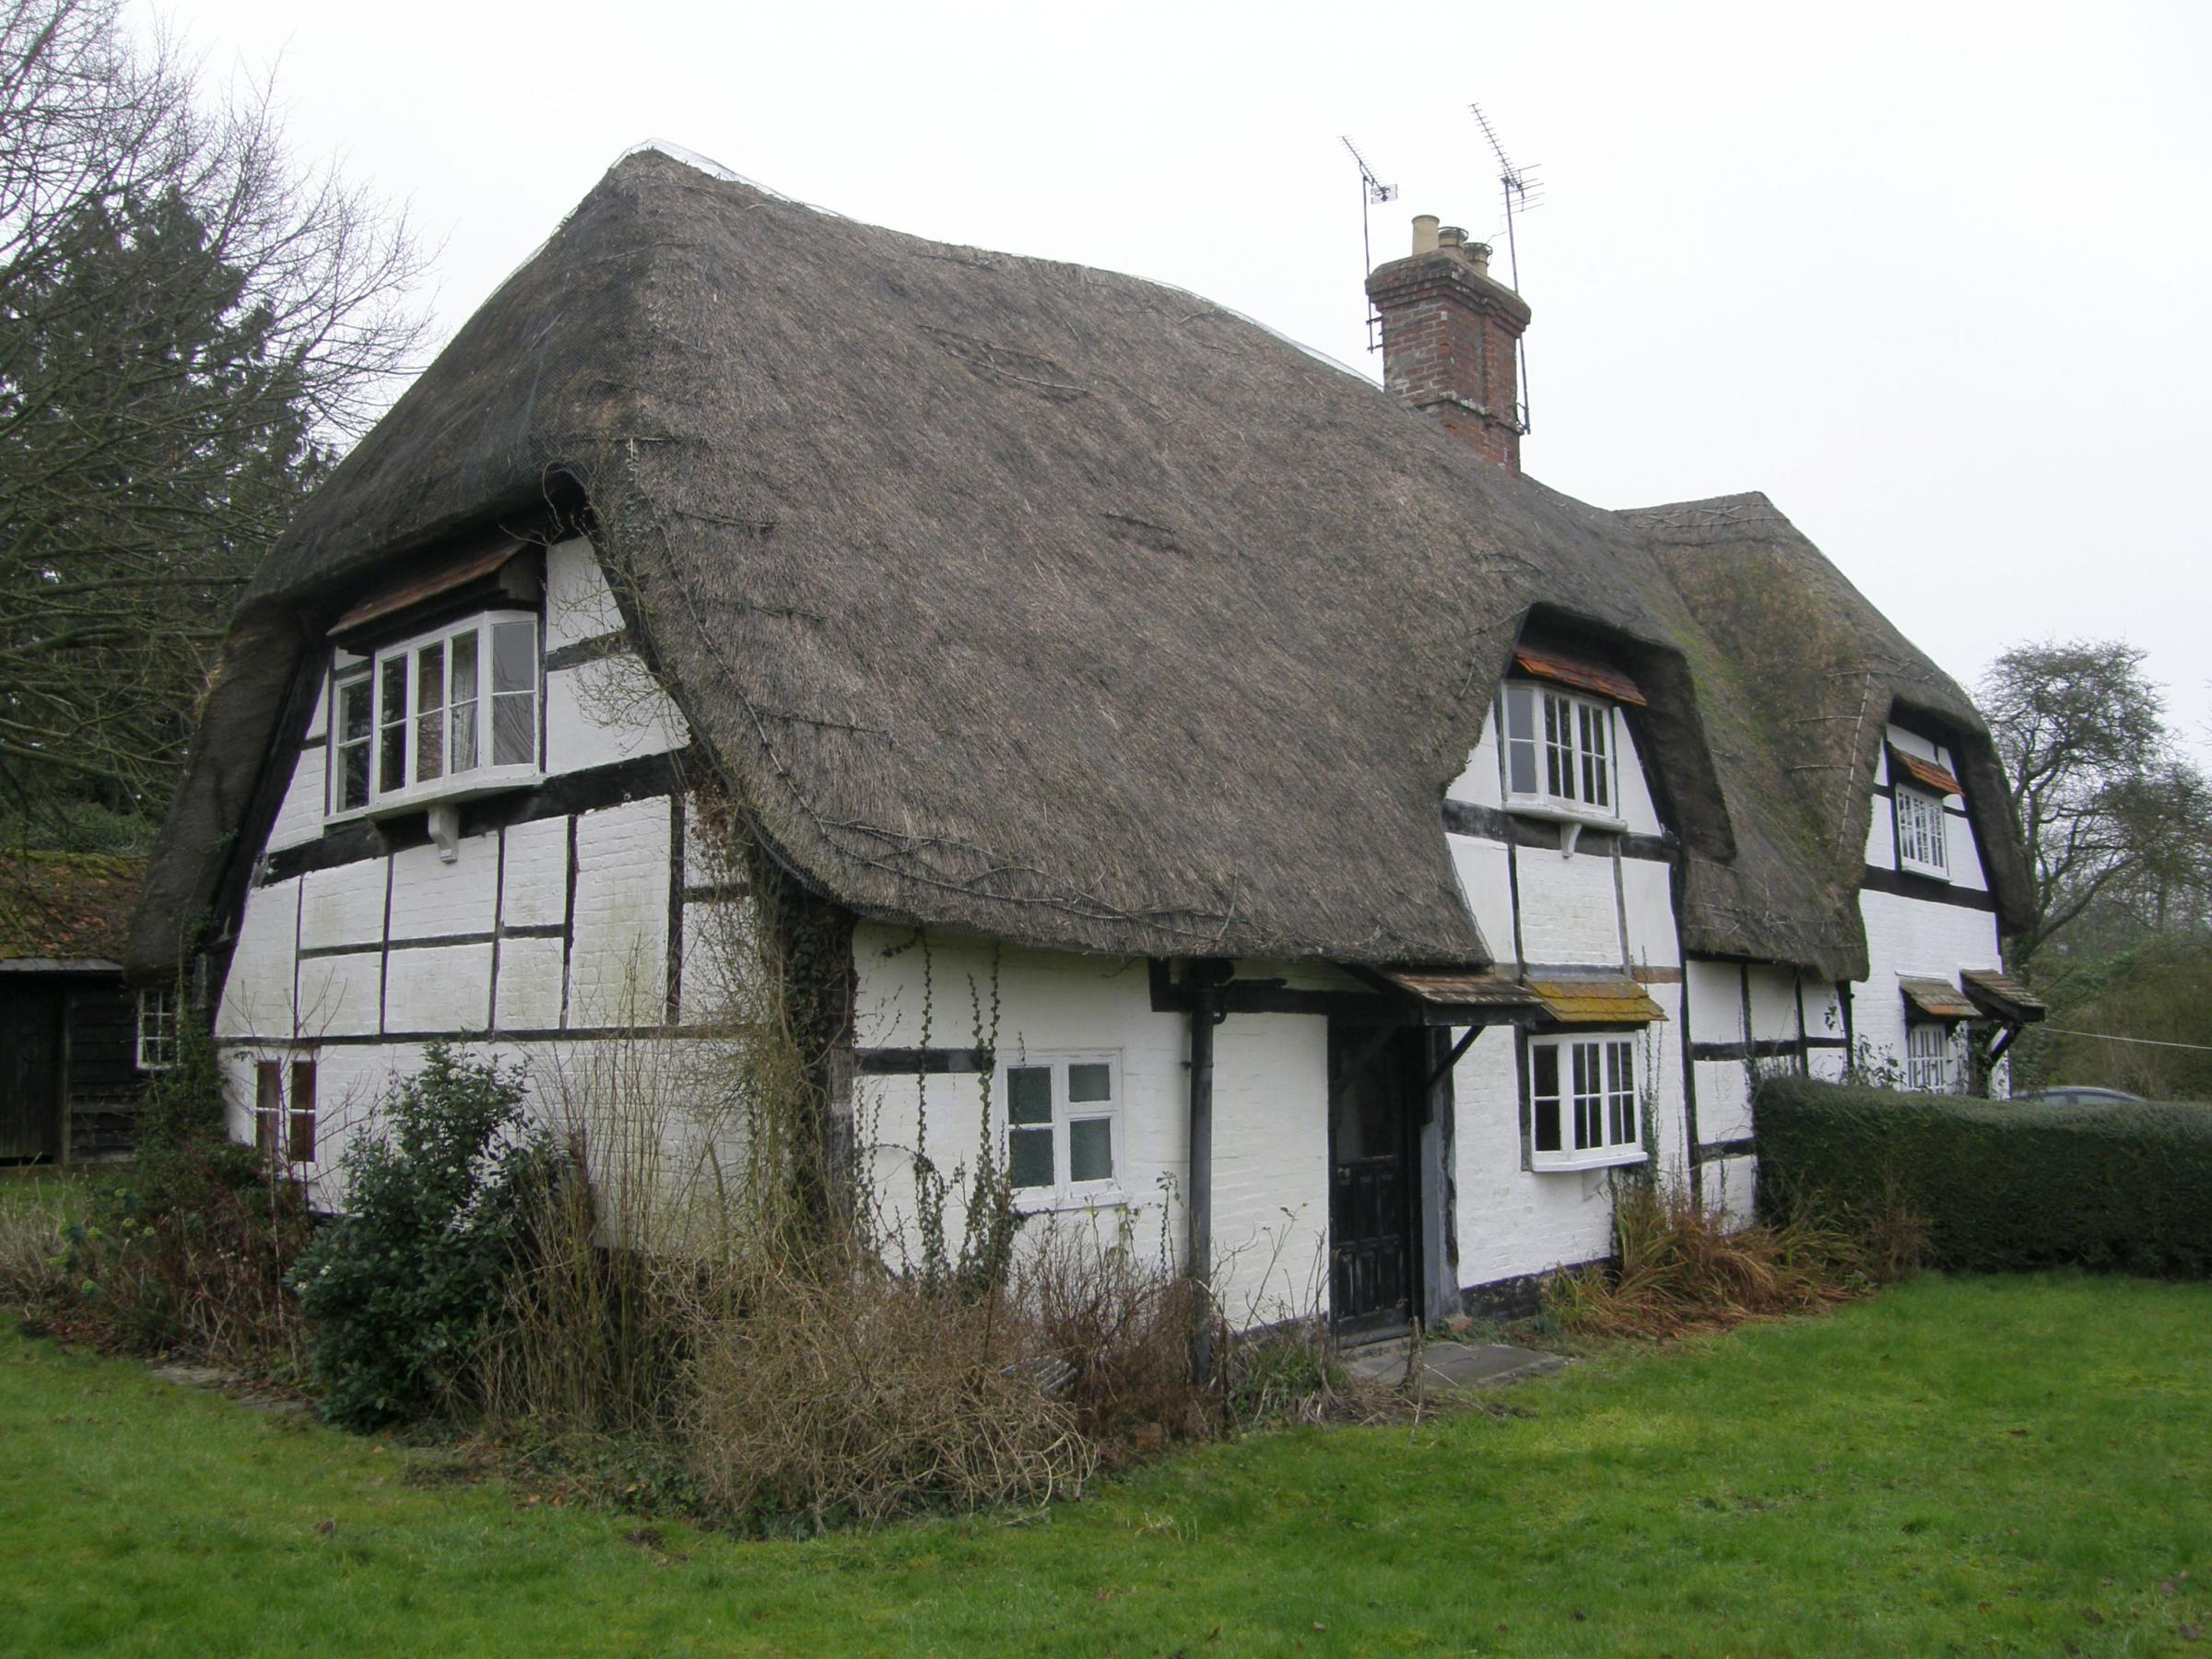 Wiltshire Vernacular Buildings